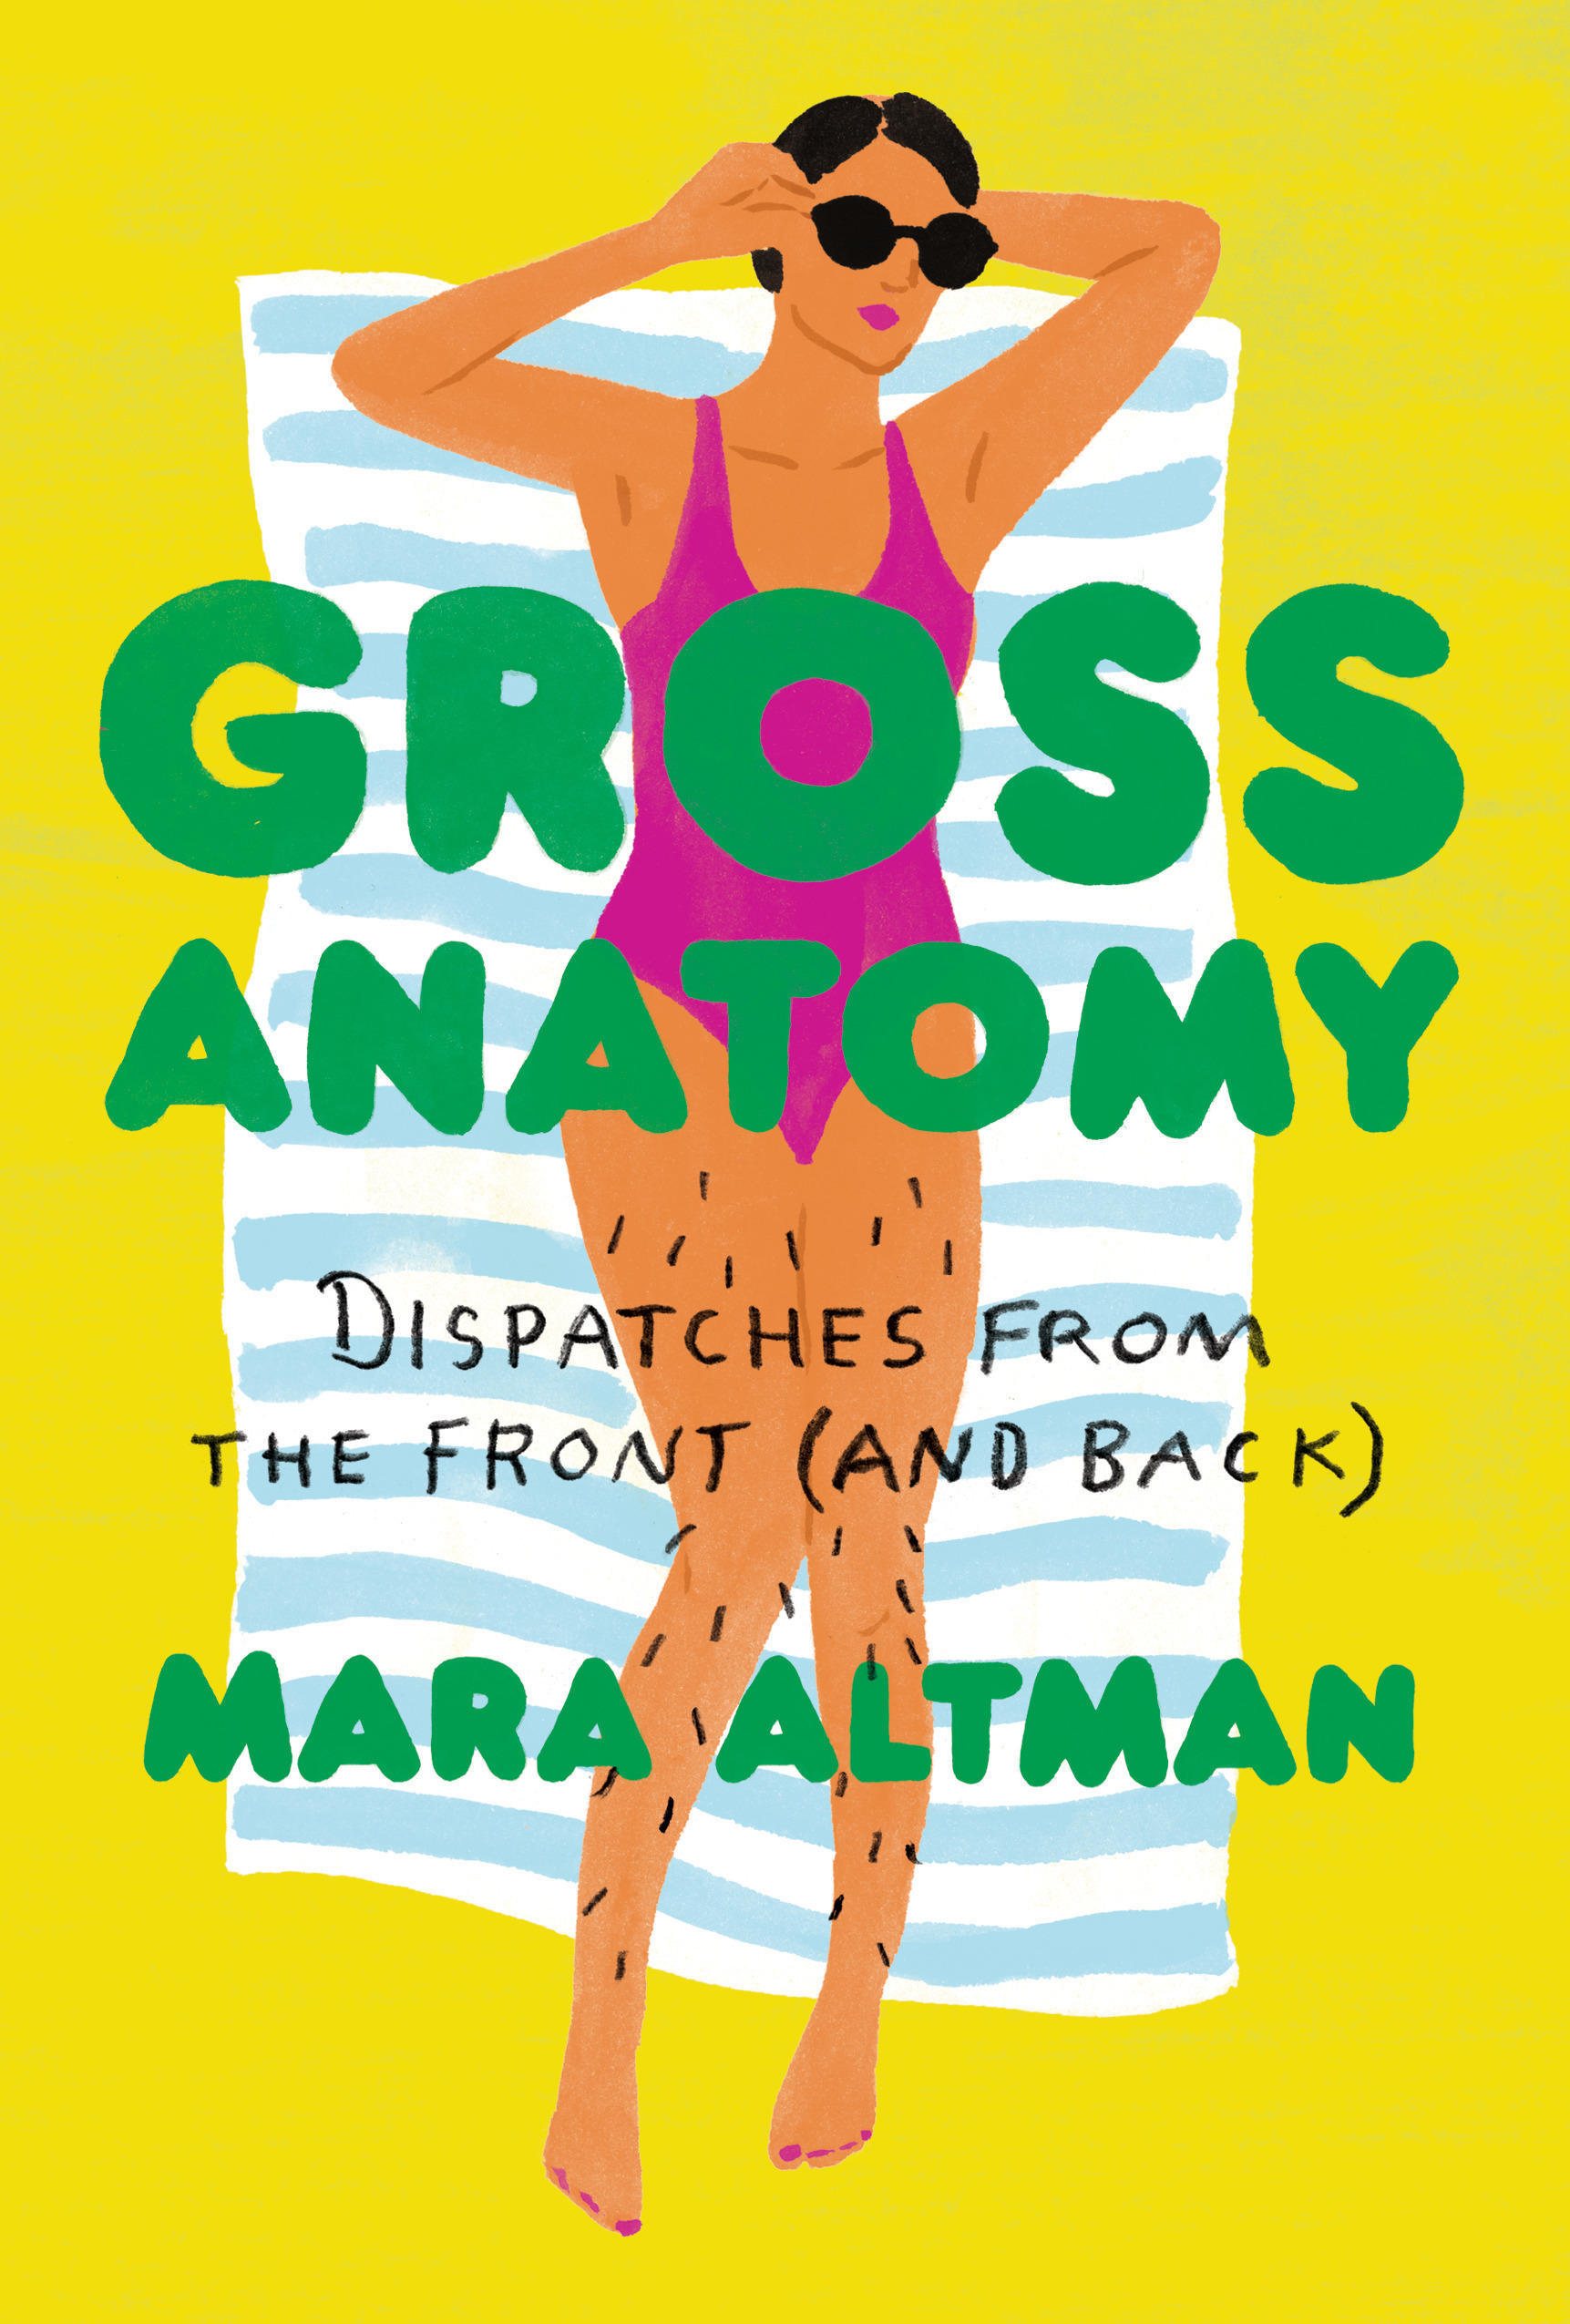 Gross Anatomy Turns Humor On Taboos About The Female Body New